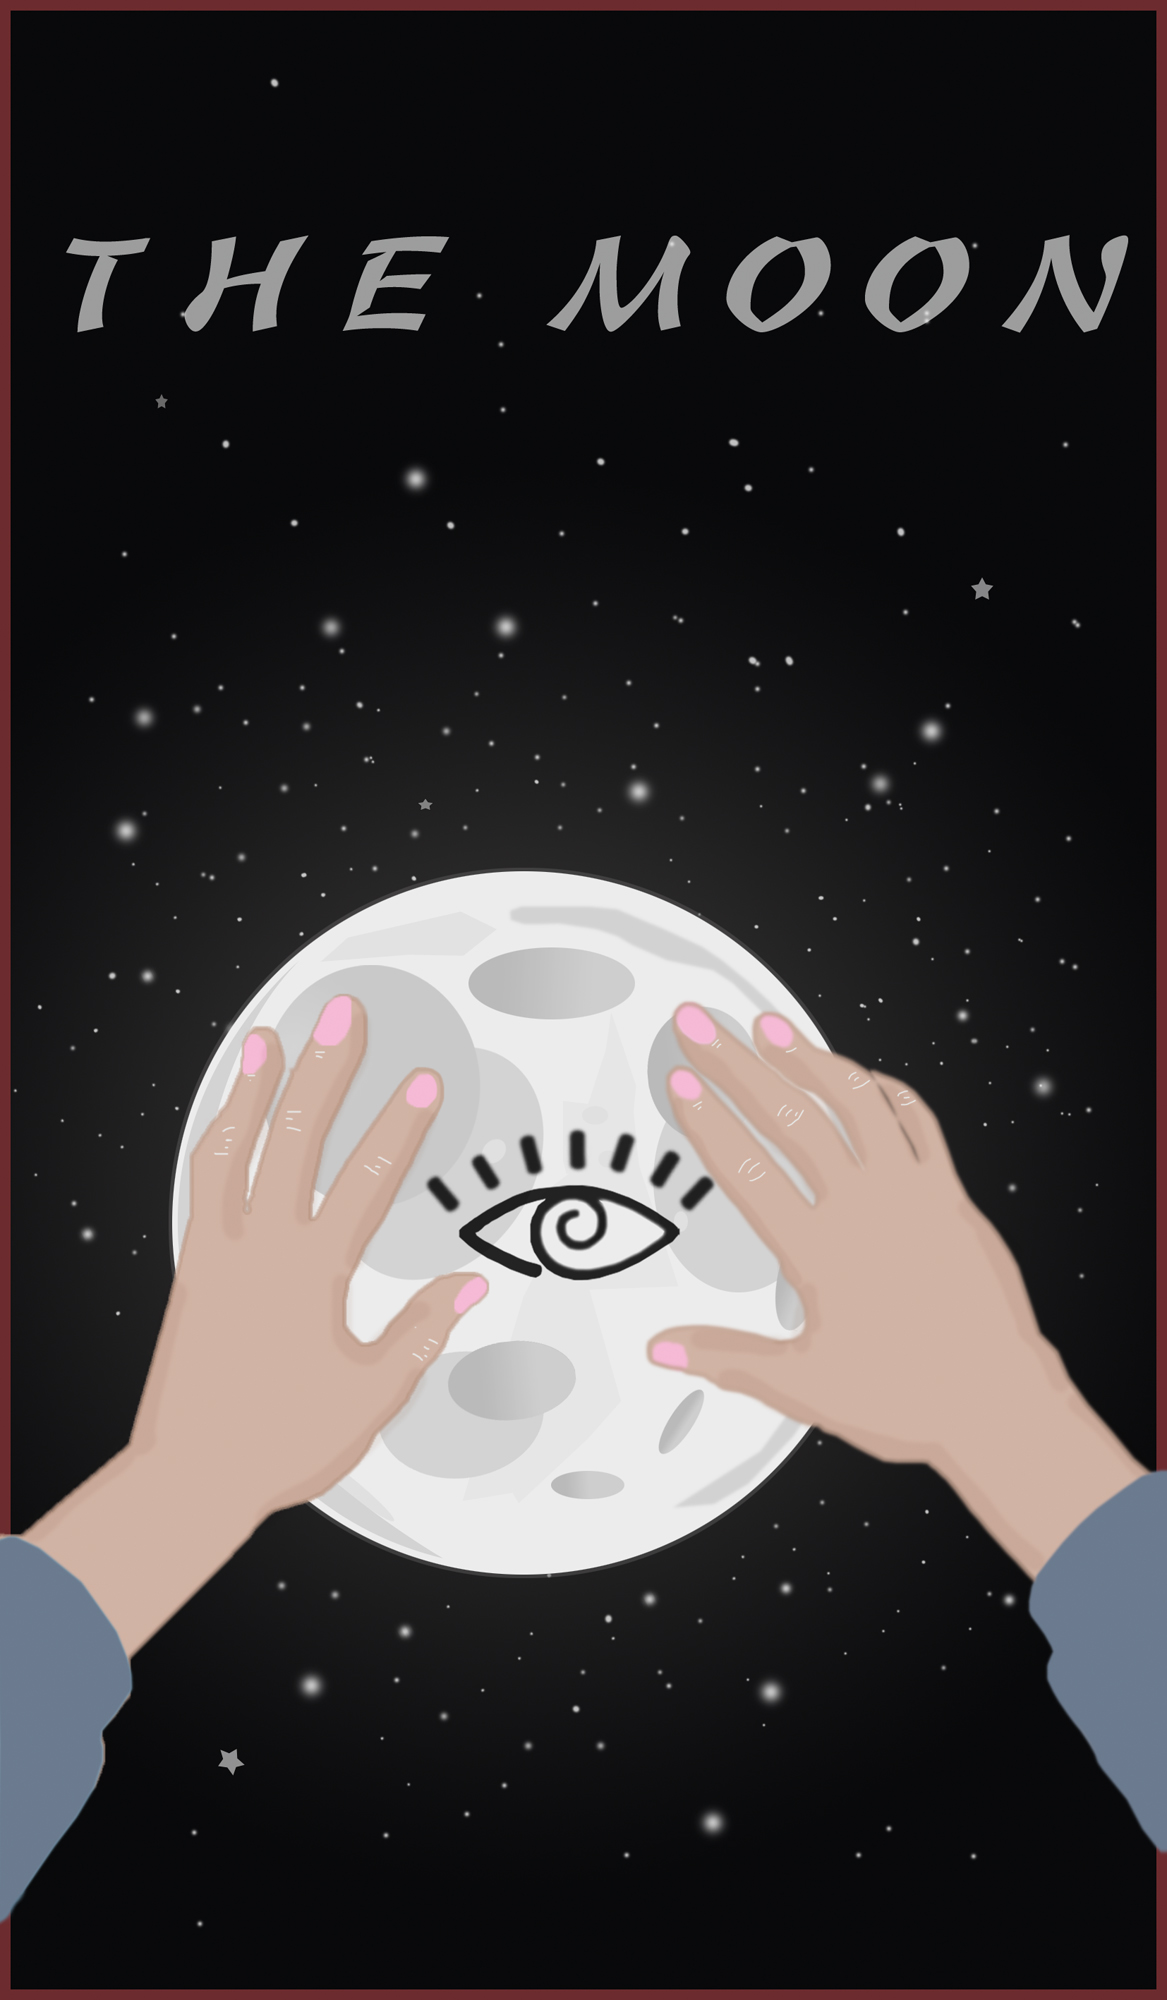 Two large hands touch the moon which has an open eye stamp on it